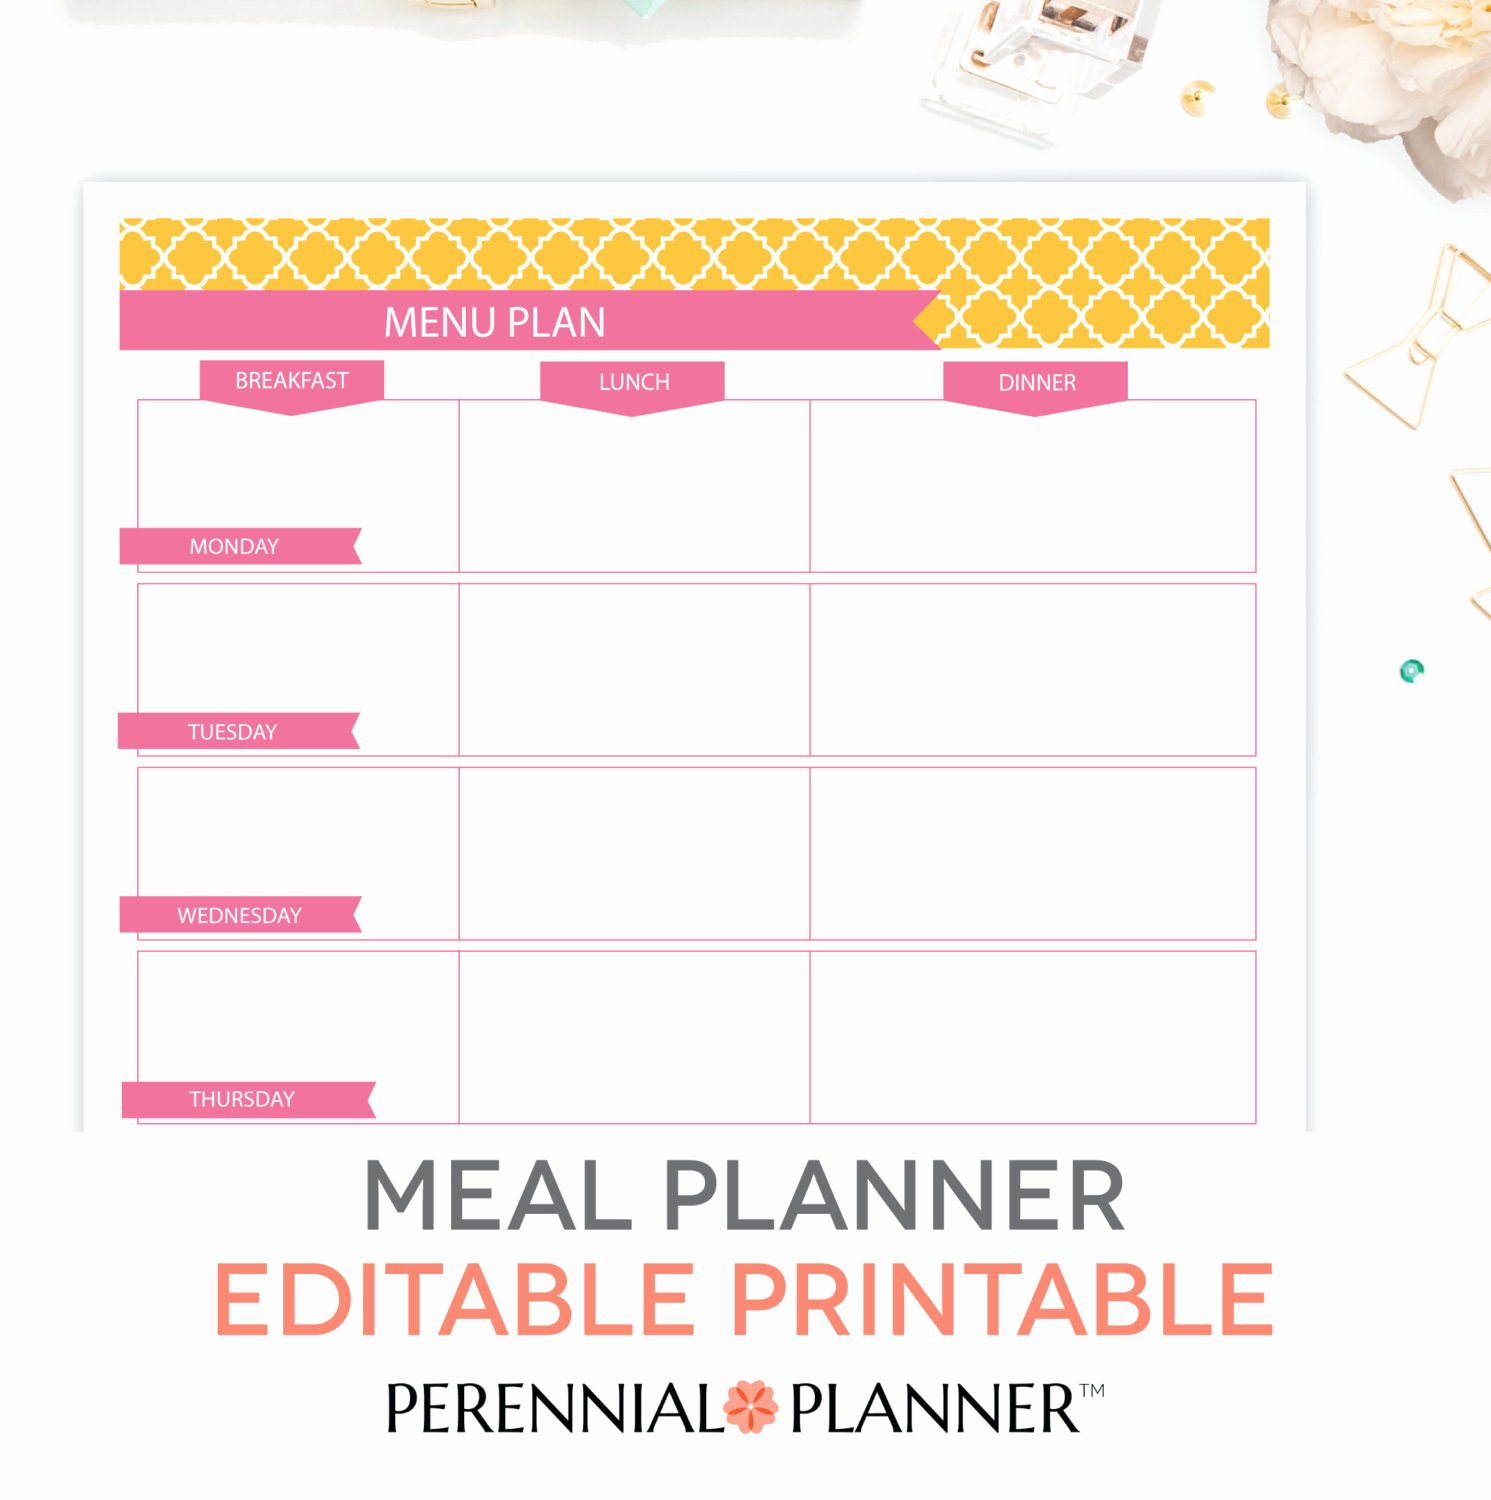 Meal Plan Spreadsheet Template Fresh Menu Plan Weekly Meal Planning Template Printable Editable